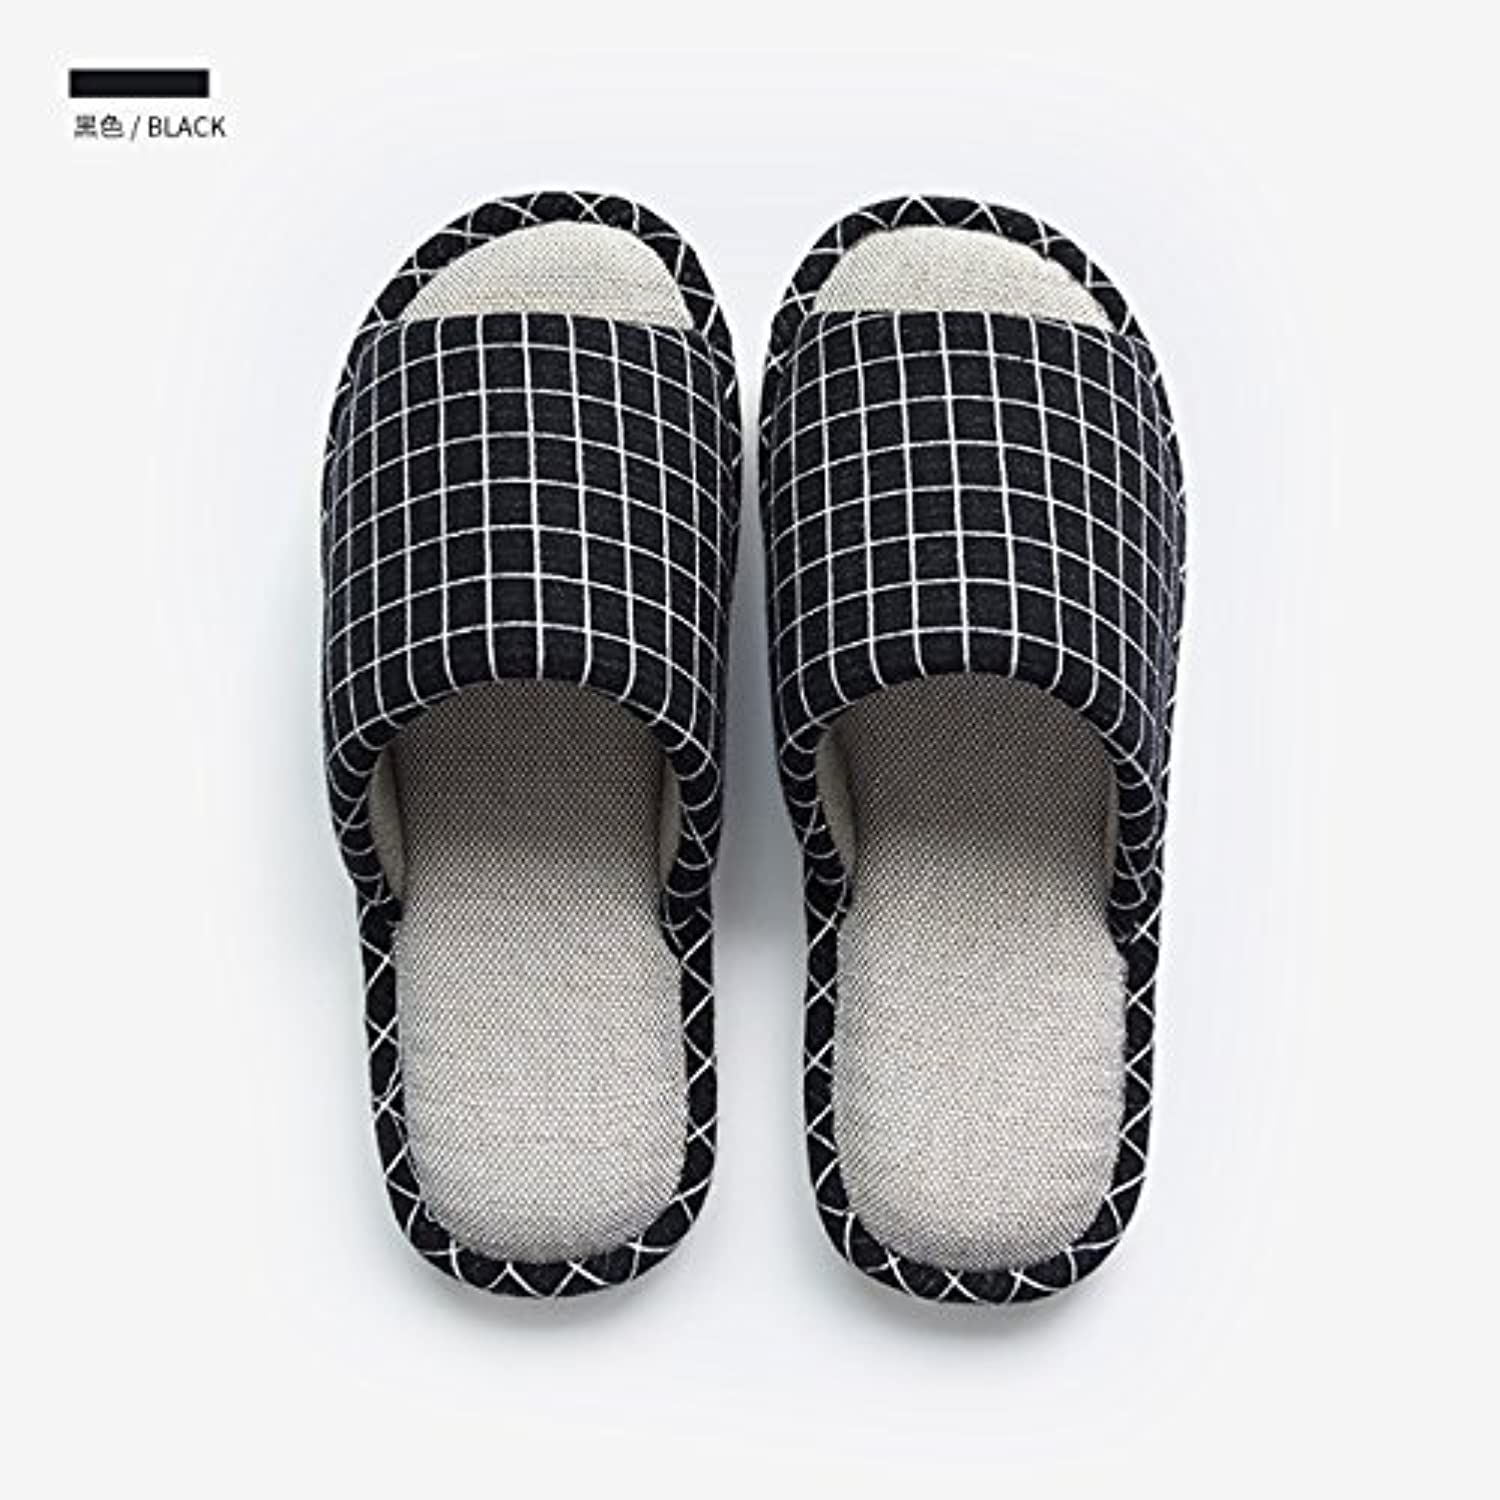 fankou Slippers Women Indoor Summer Home Anti-Slip Cotton Linen Slippers Male Couples Home Floor Slippers [2],...